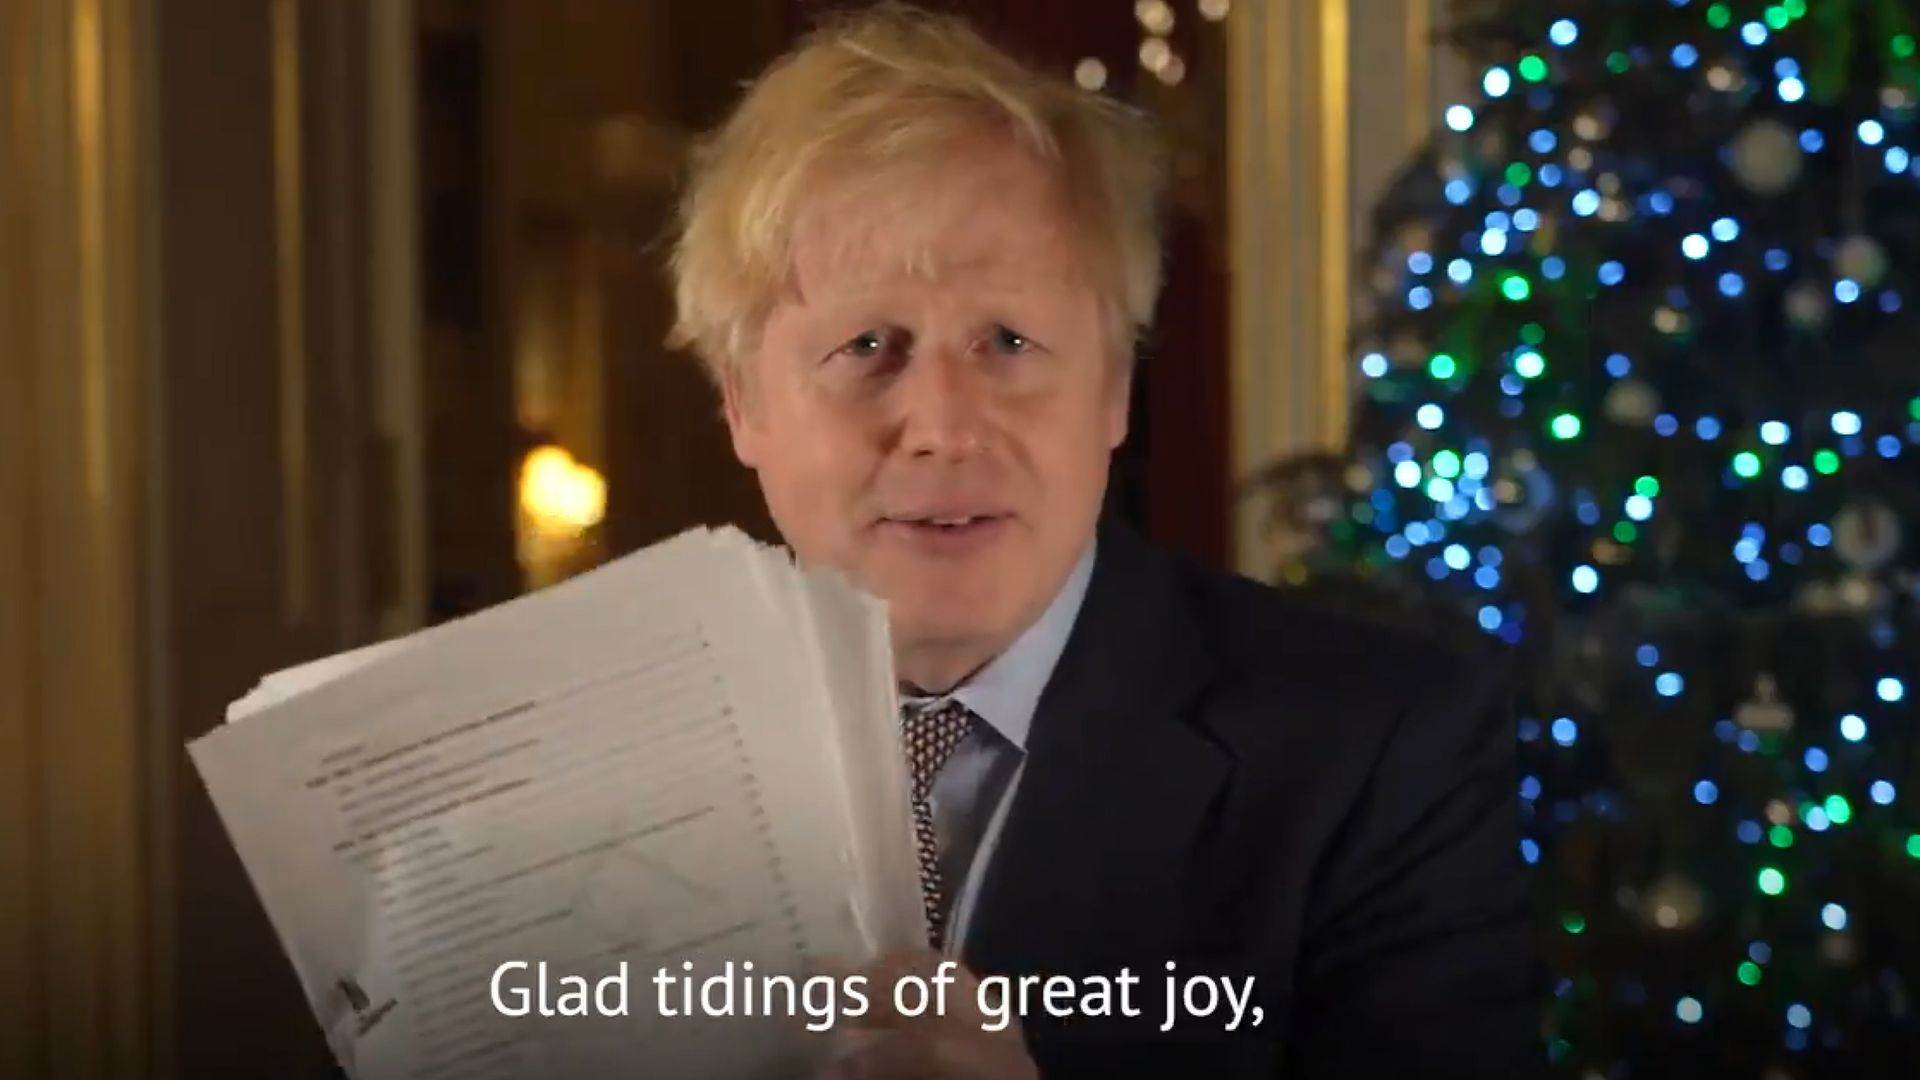 Prime Minister Boris Johnson holding up a document believed to be the pages of the Brexit deal during his Christmas message - Credit: PA